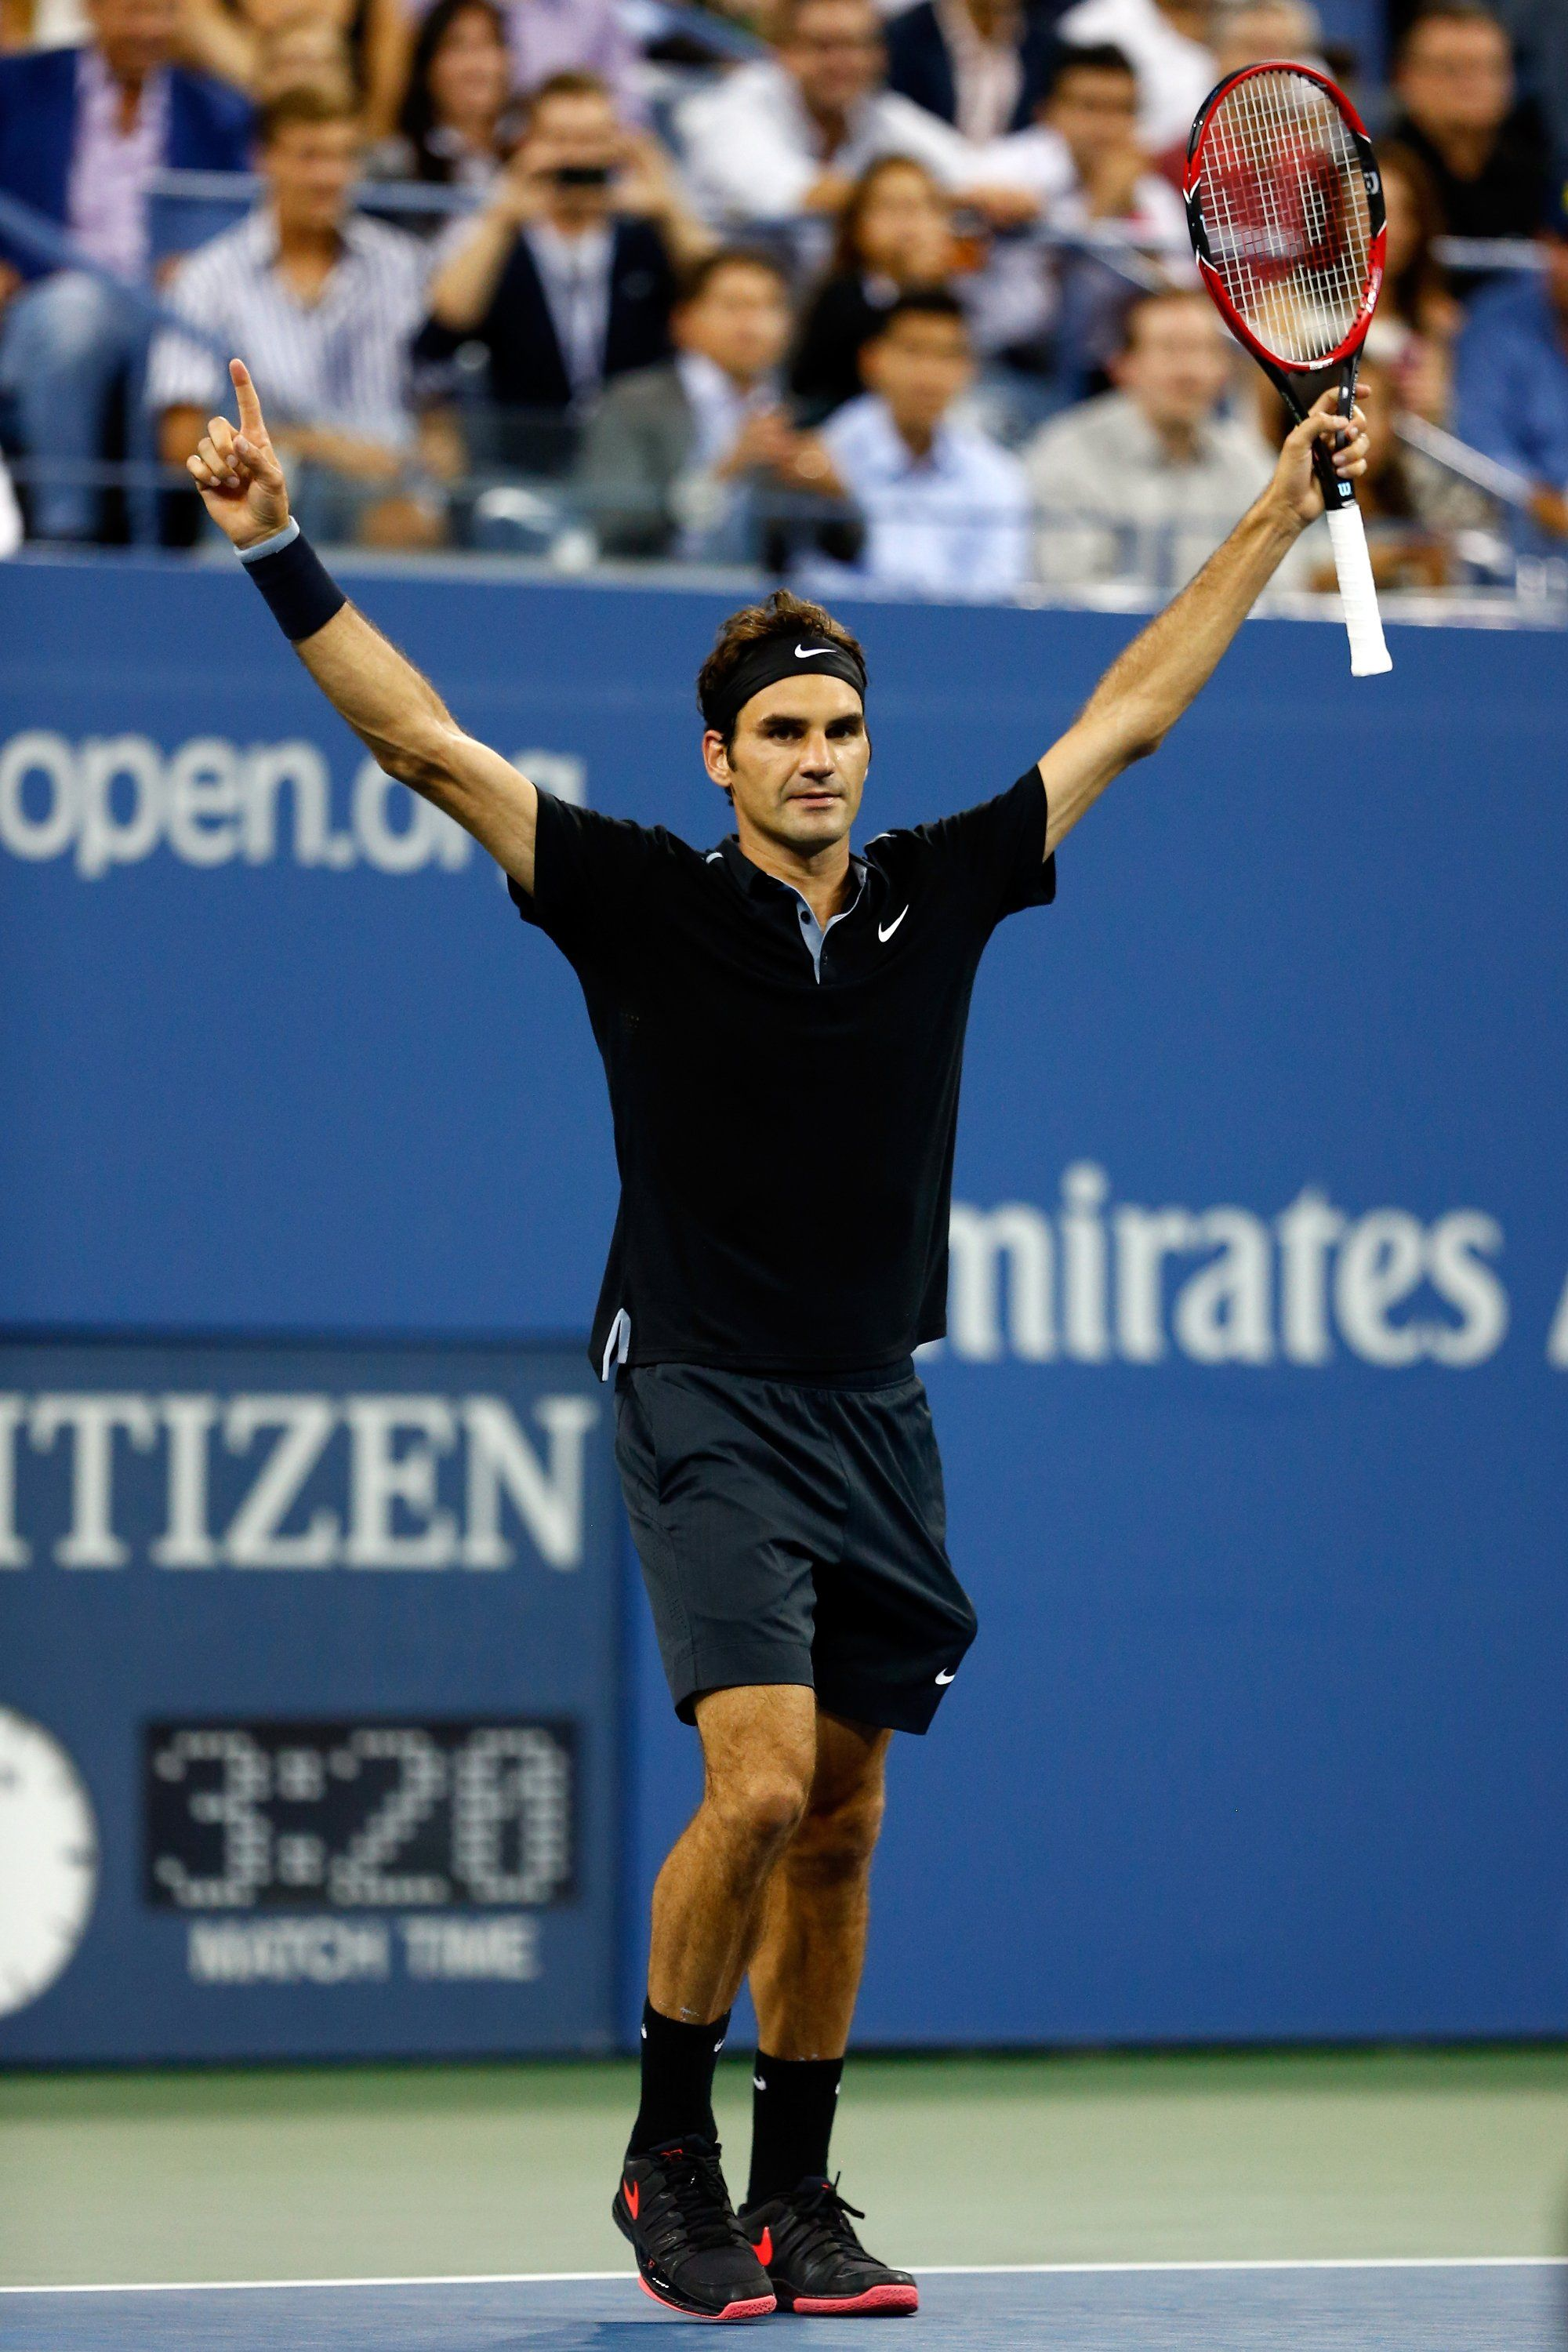 Roger Federer On Style Both On And Off The Court Roger Federer Tennis Rogers